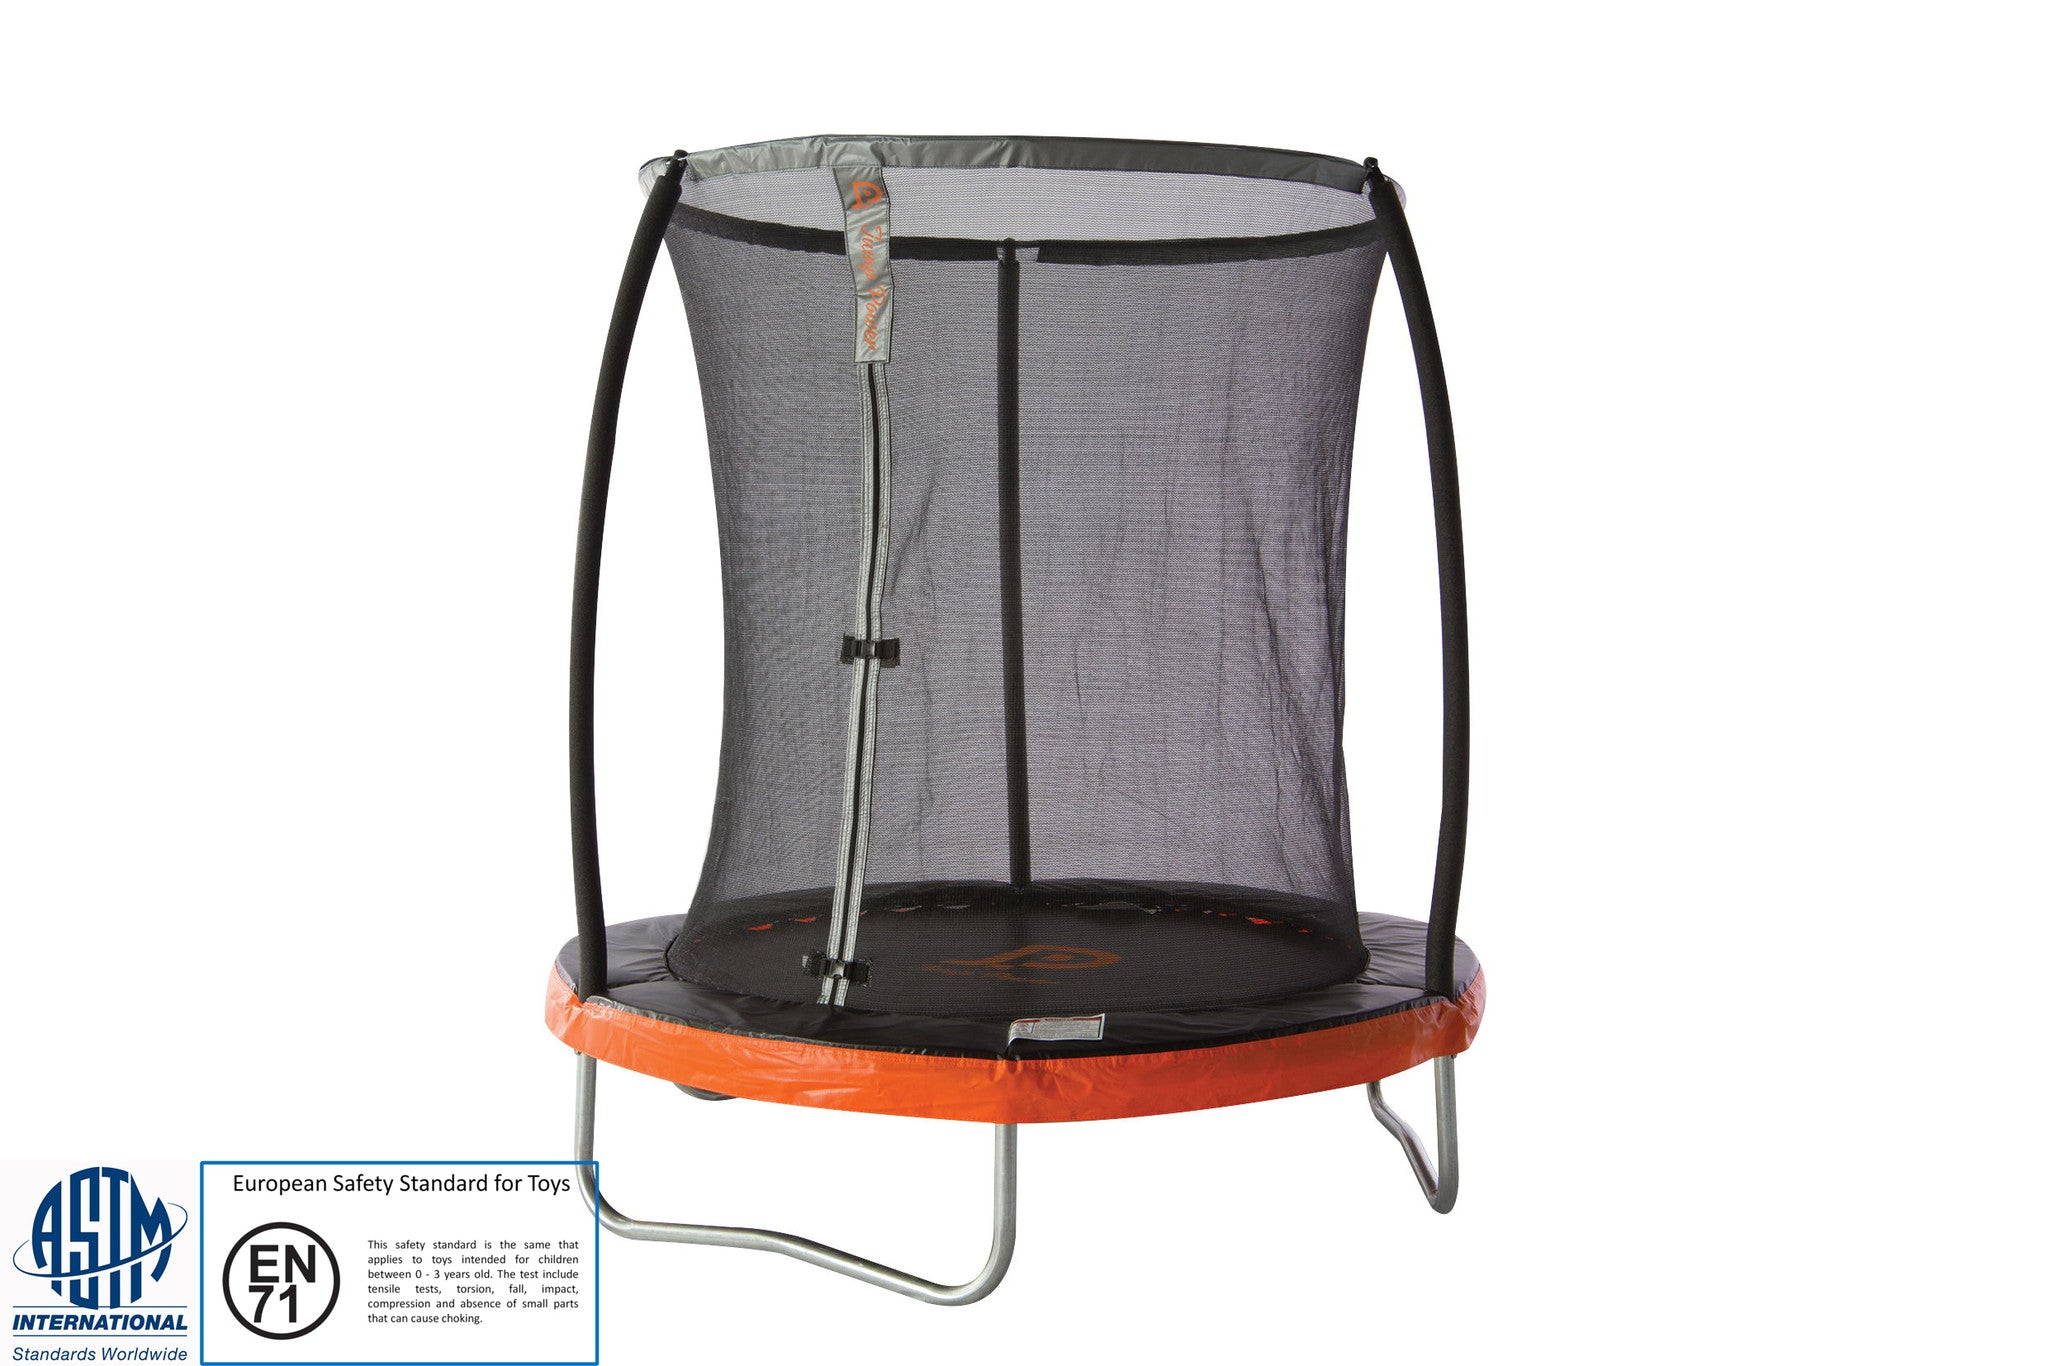 6ft. Trampoline & Safety Net Enclosure Combo